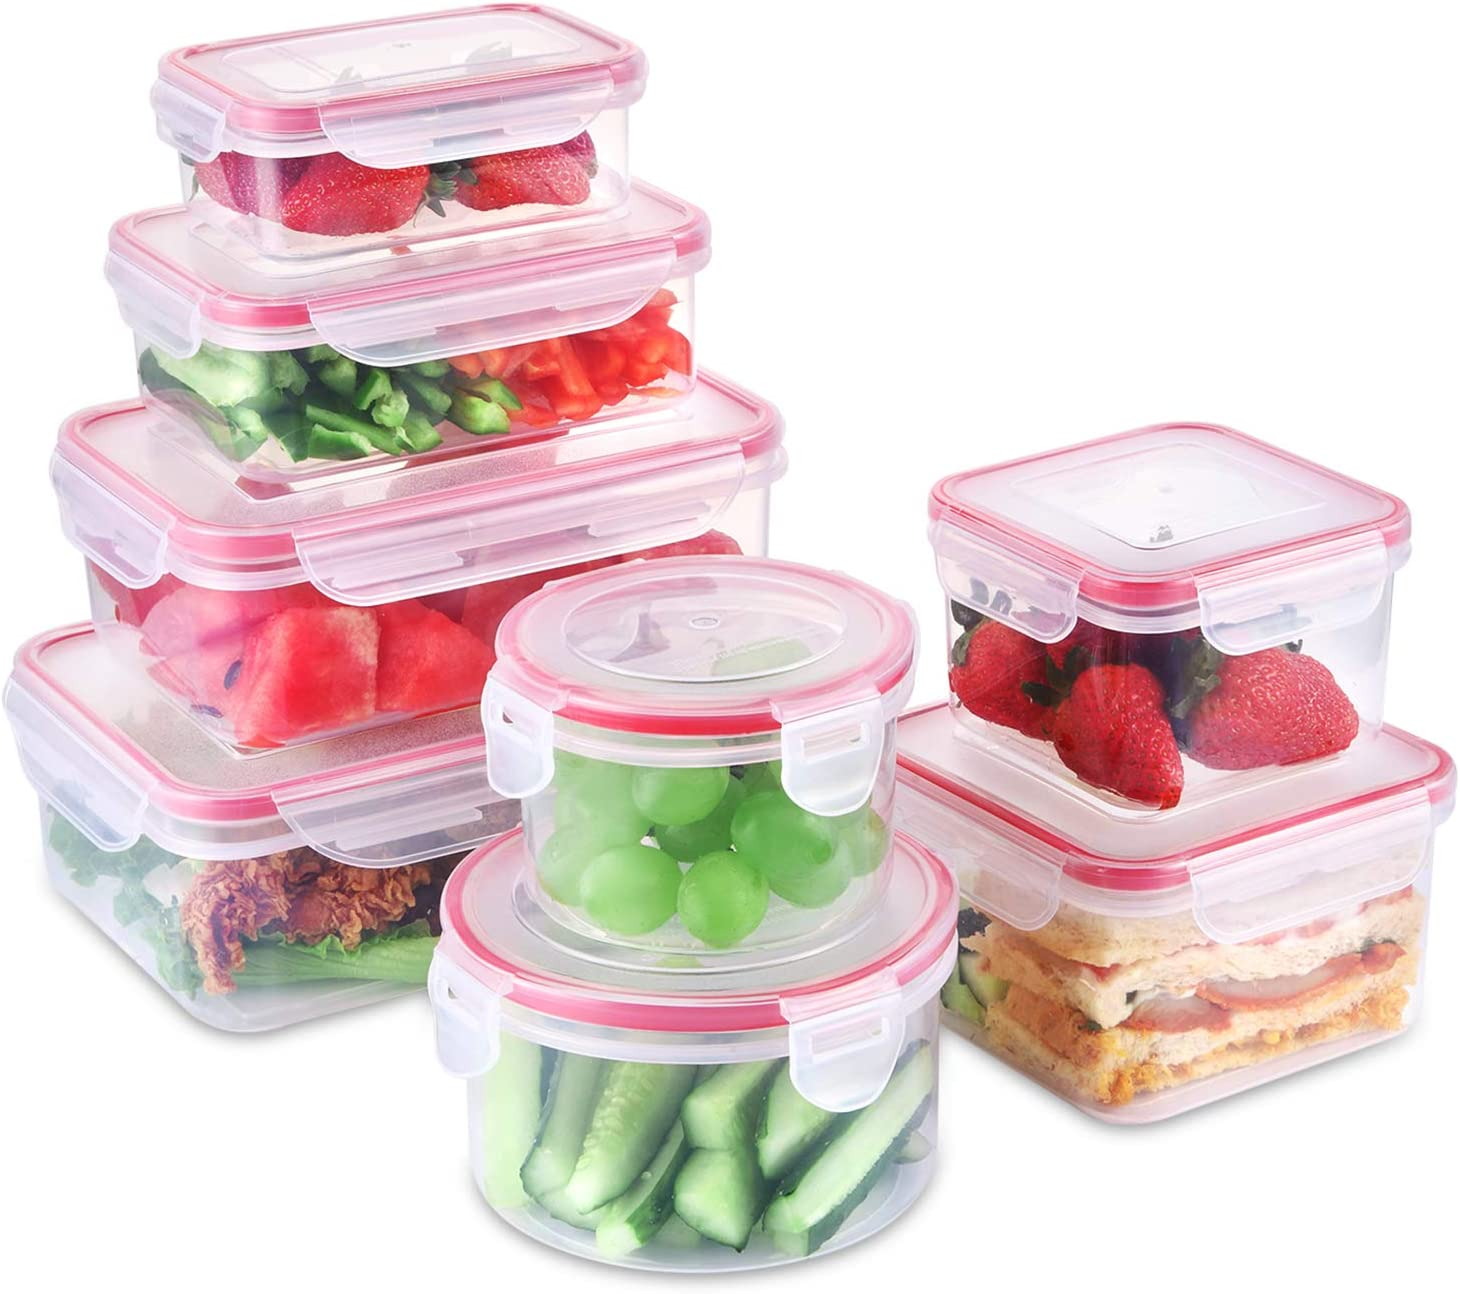 SHOMOTE Food Storage Containers with Lids Airtight, Plastic Lunch Containers BPA-Free, Stackable Kitchen Freezer Containers, Microwave & Dishwasher Safe, Gift Idea, Set of 8